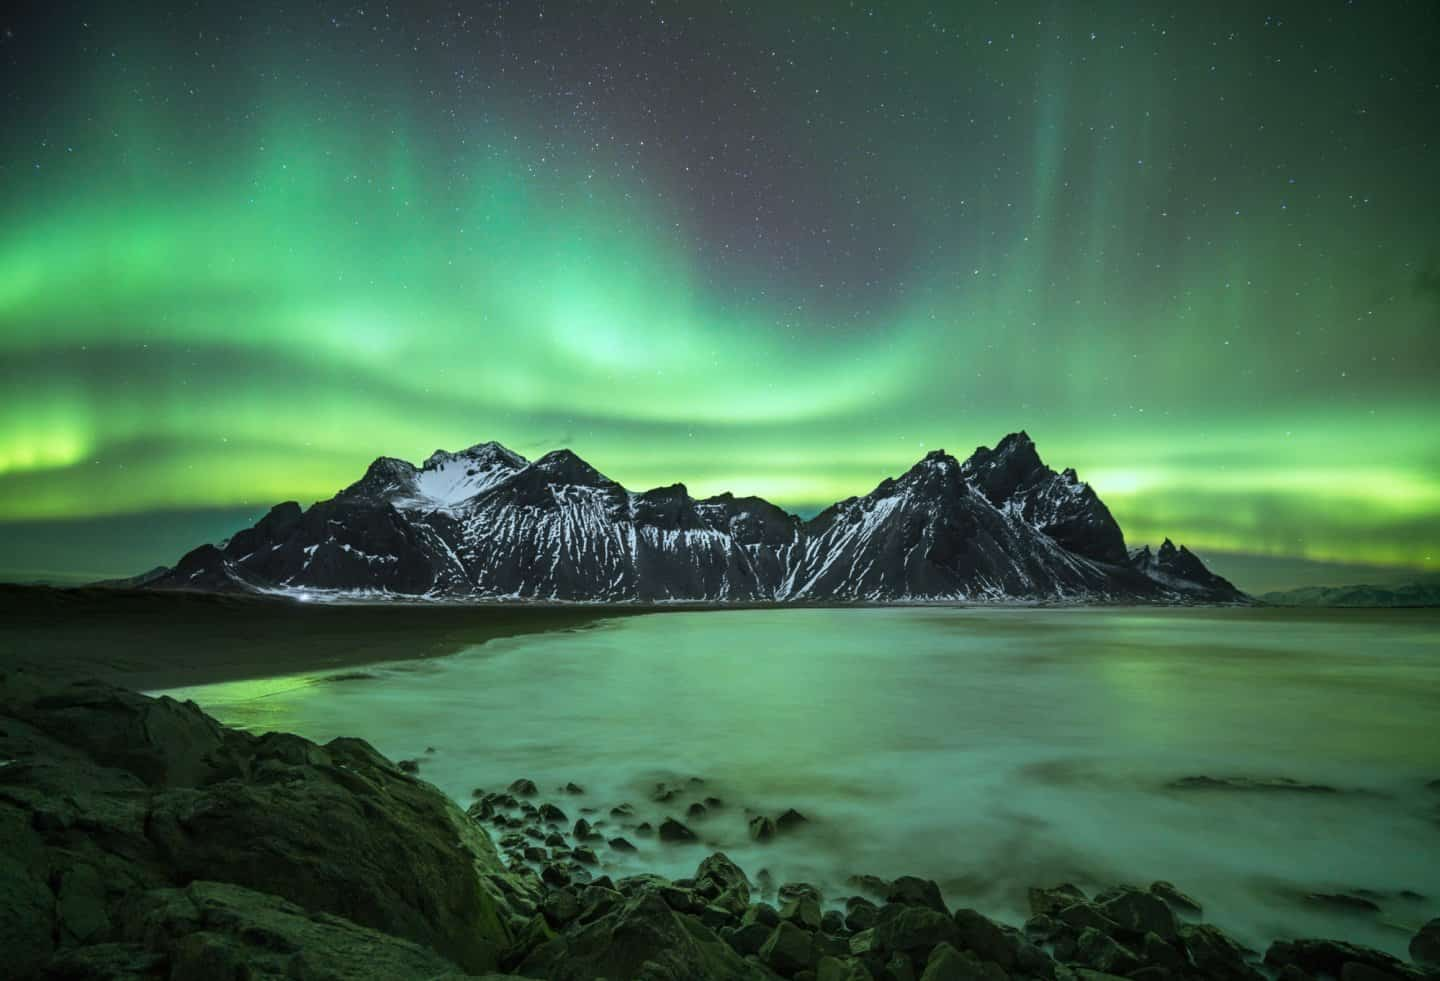 Photographing aurora at Vestrahorn on an Iceland winter night.